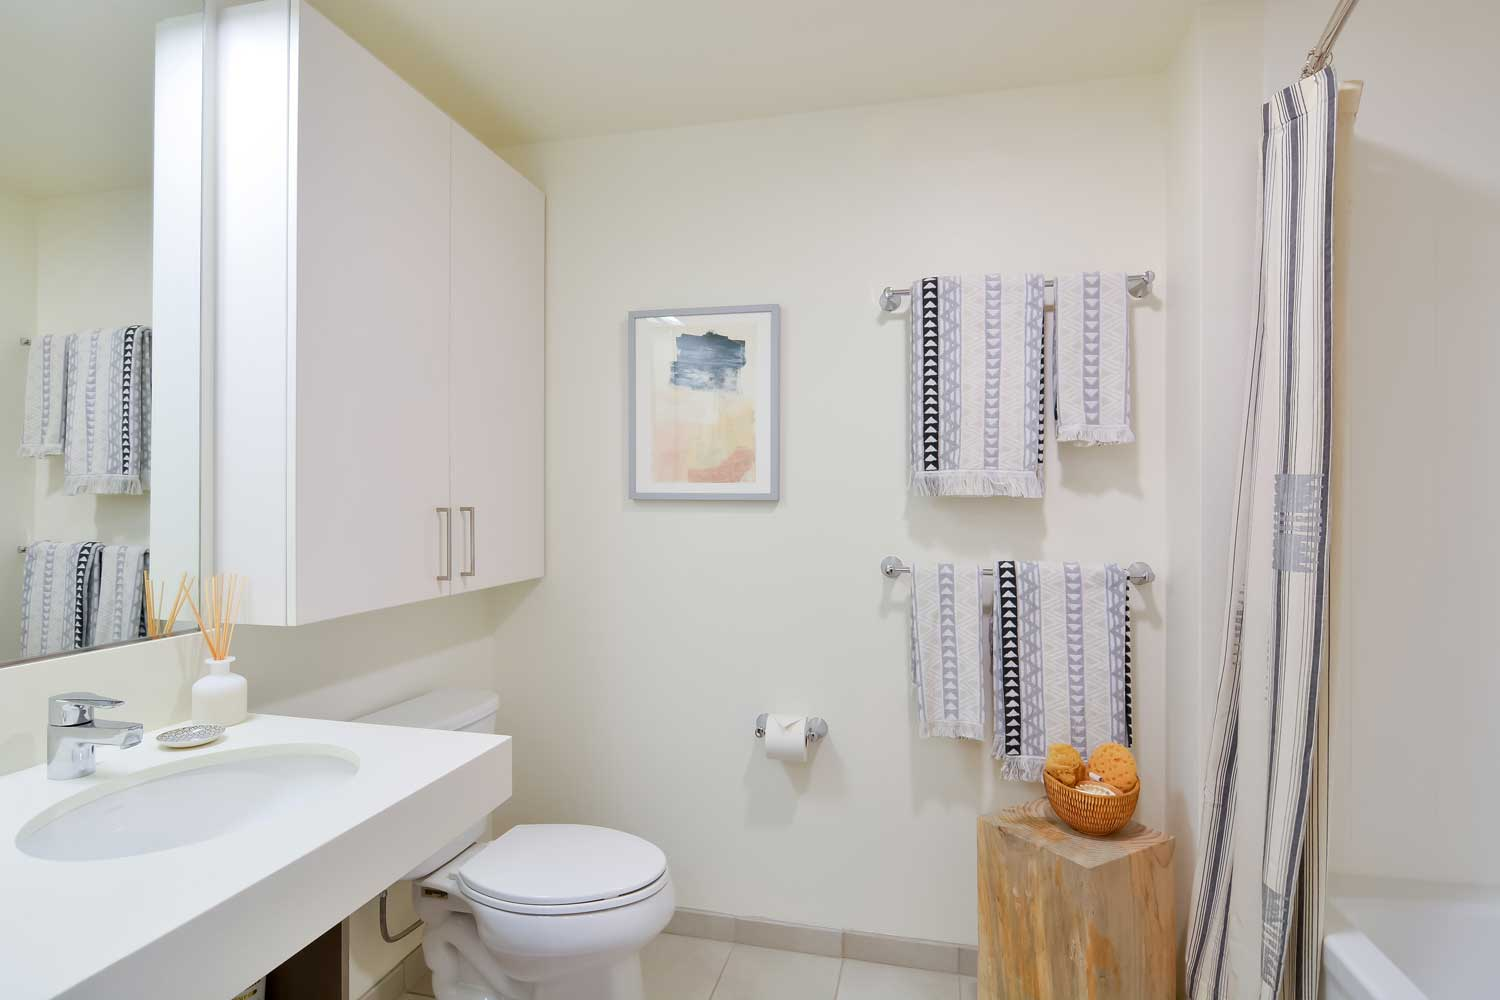 Apartments in Union City for Rent - The Union Flats Bathroom with Large Vanity, Extra Storage, and Shower Tub